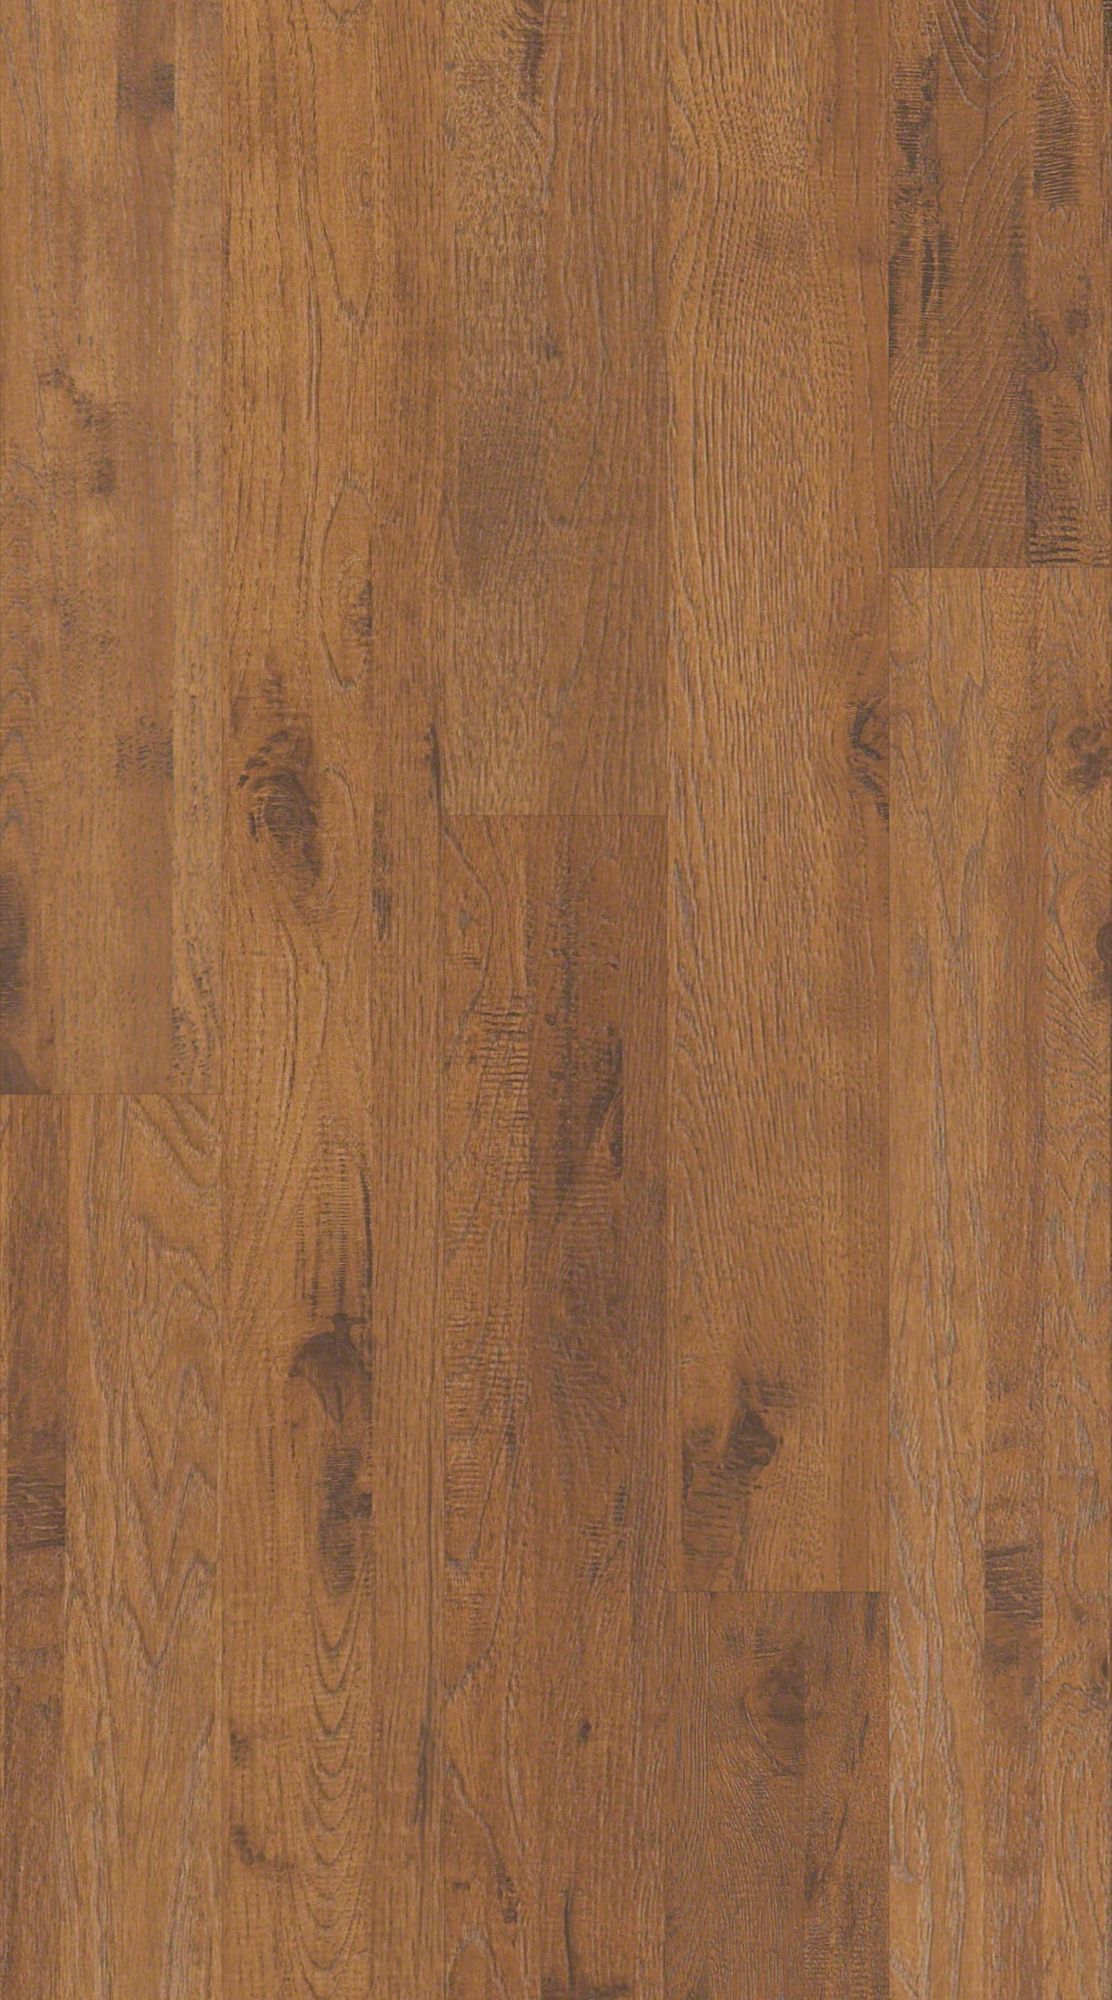 Riverdale Hickory Sl300 Color St Johns Hckry 00277 3 Colors Available Shaw Wood By Floors